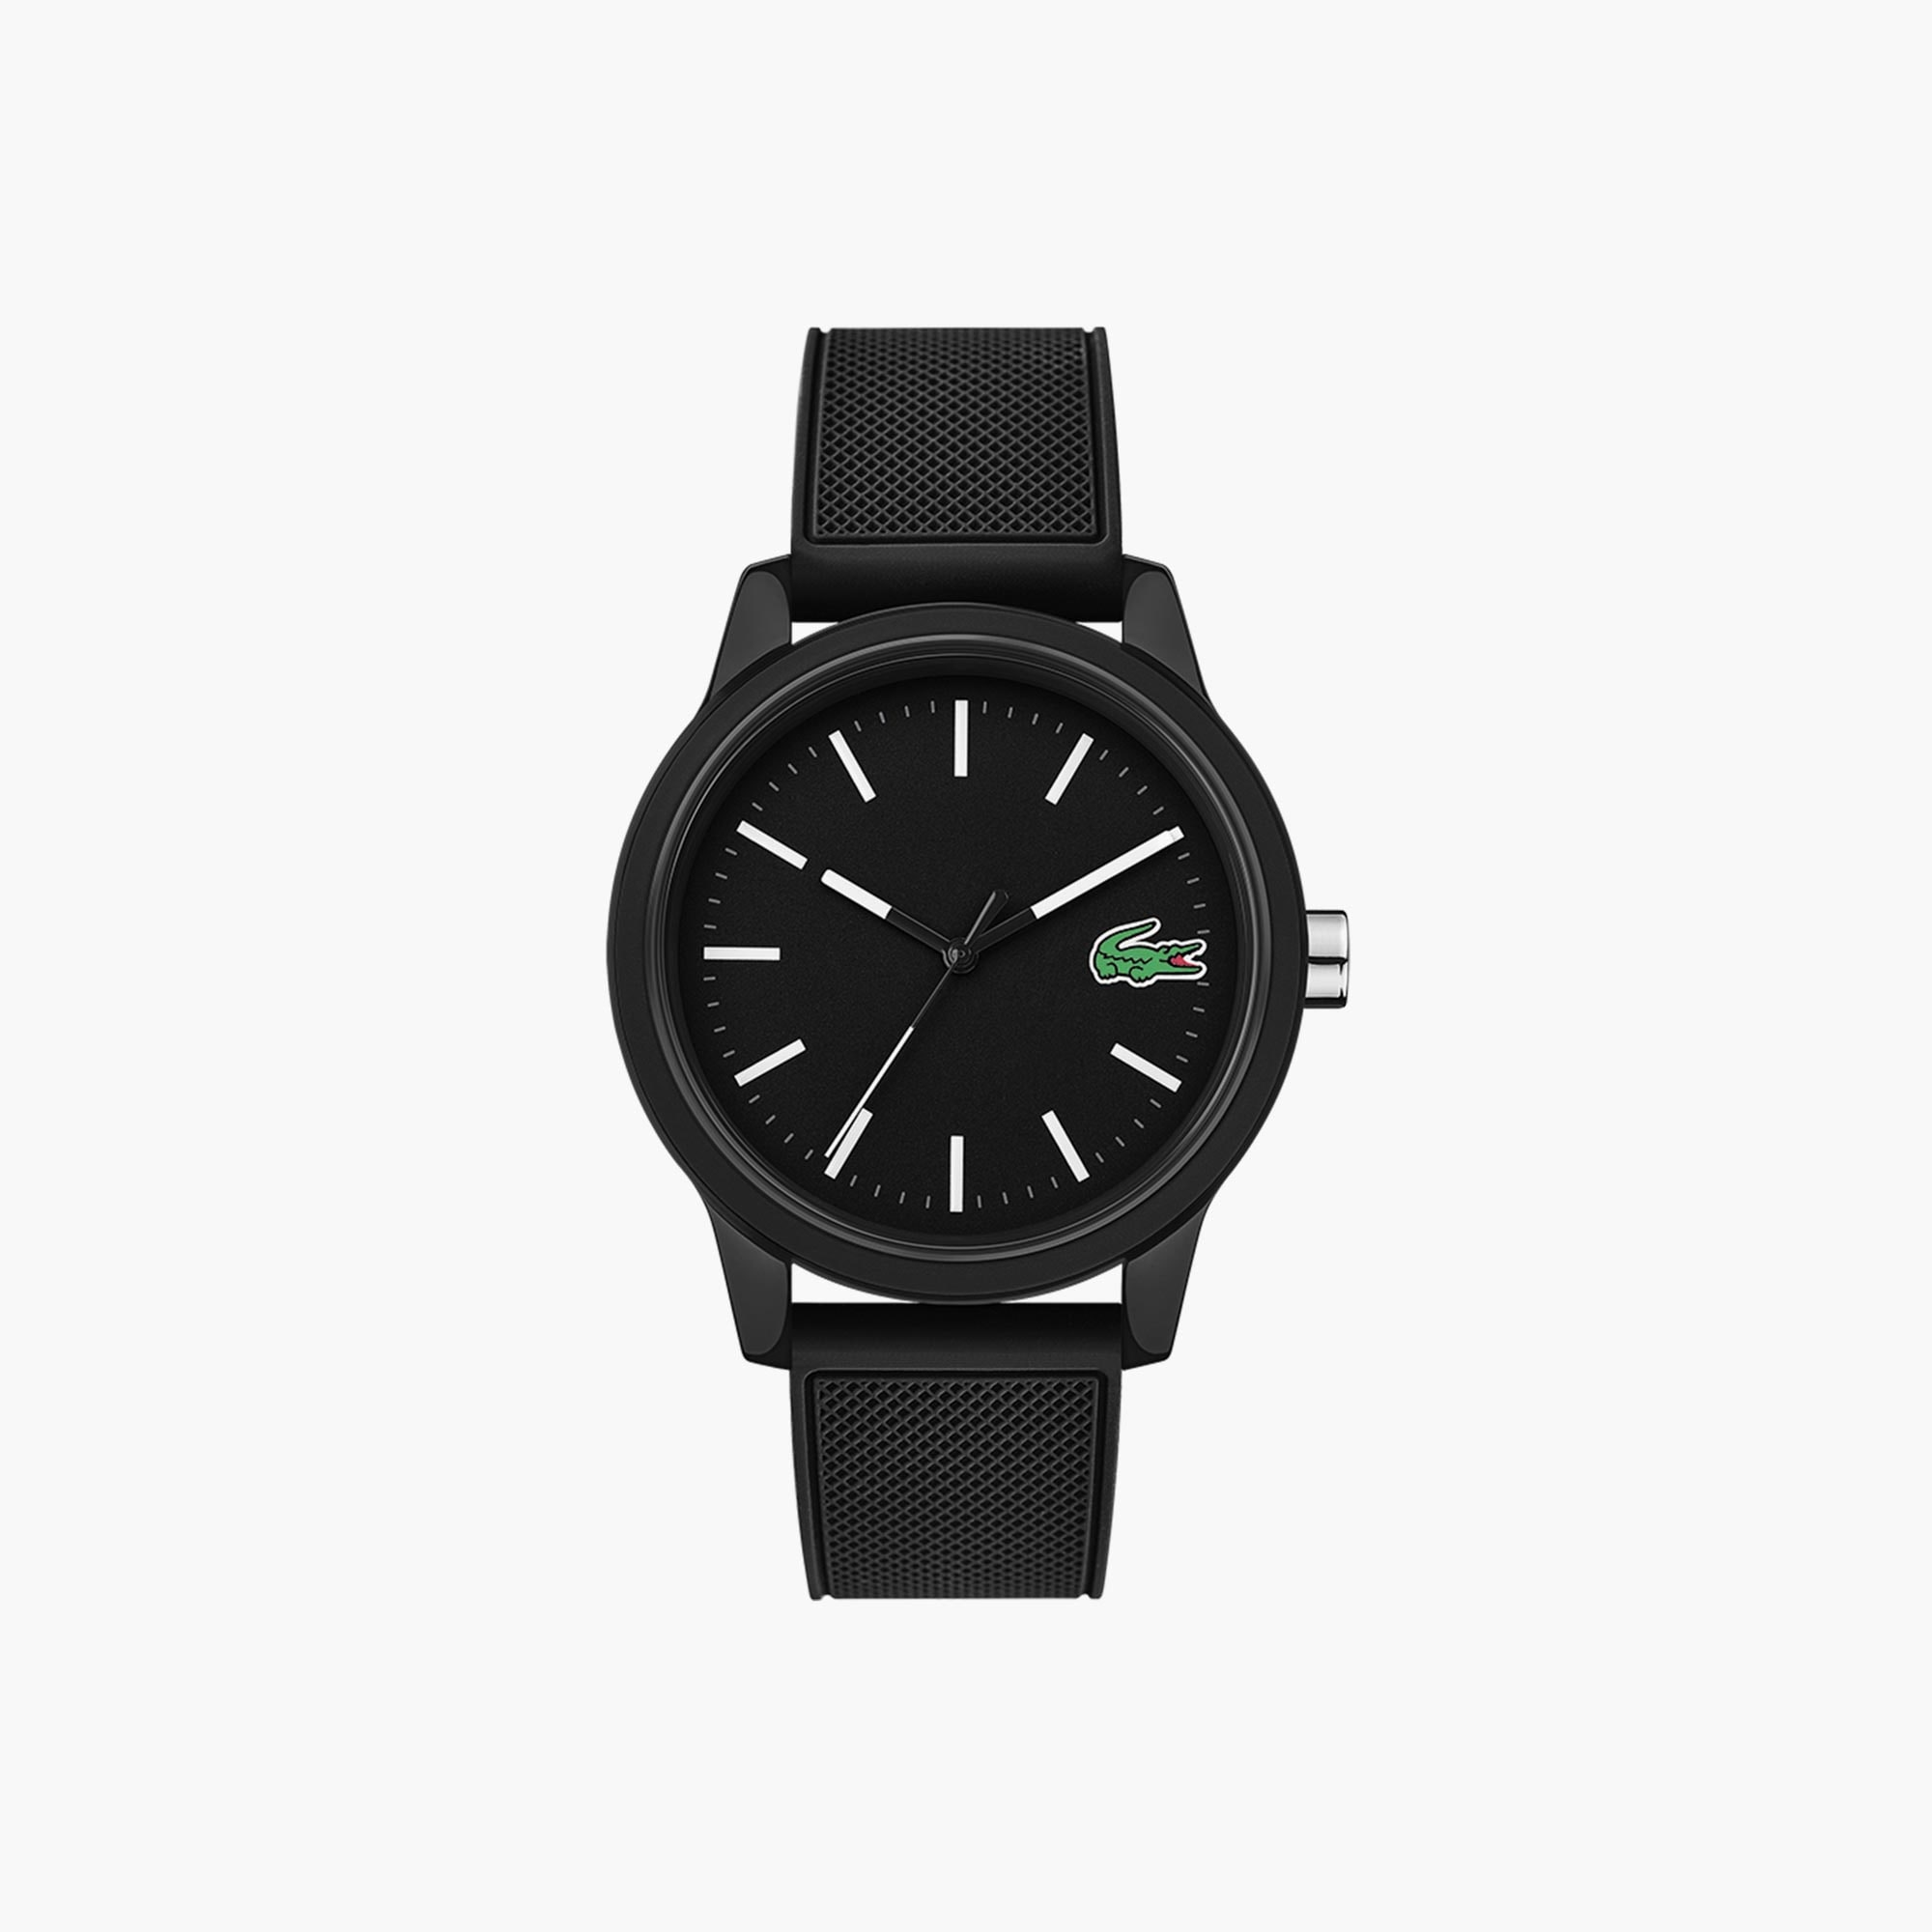 827054194739 Men s Lacoste 12.12 Watch with Black Silicone Strap